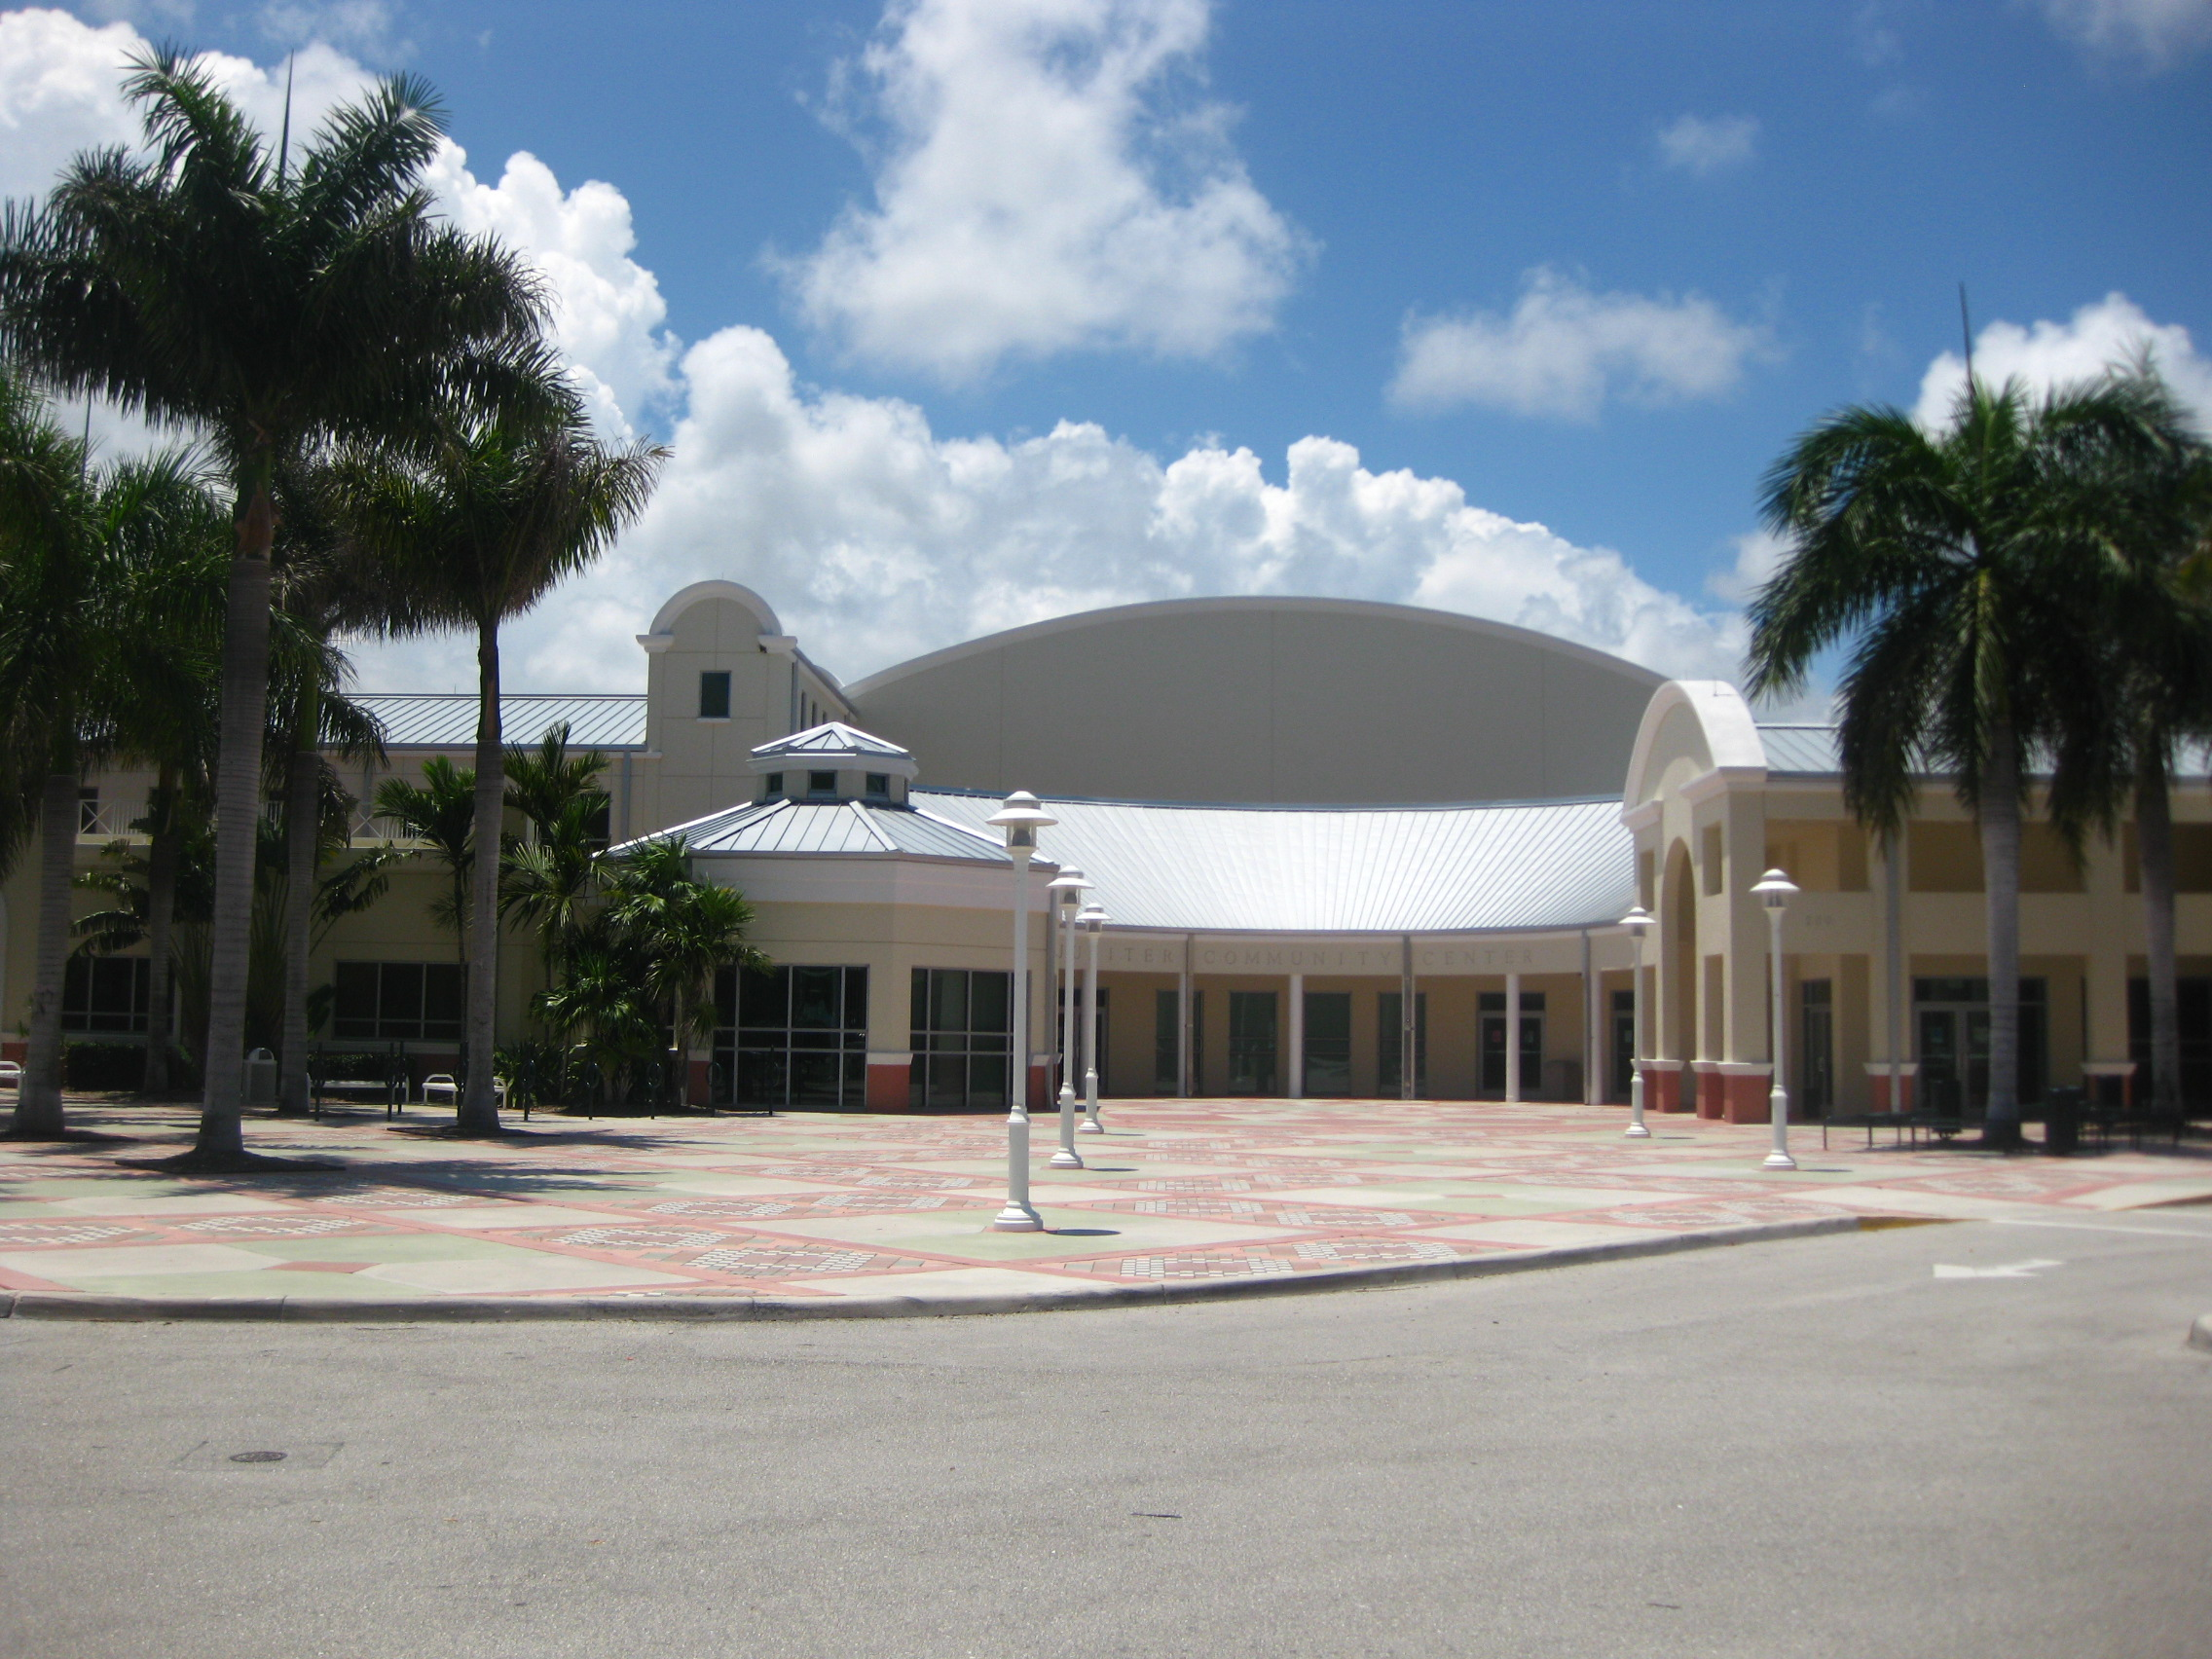 Jupiter Community Center